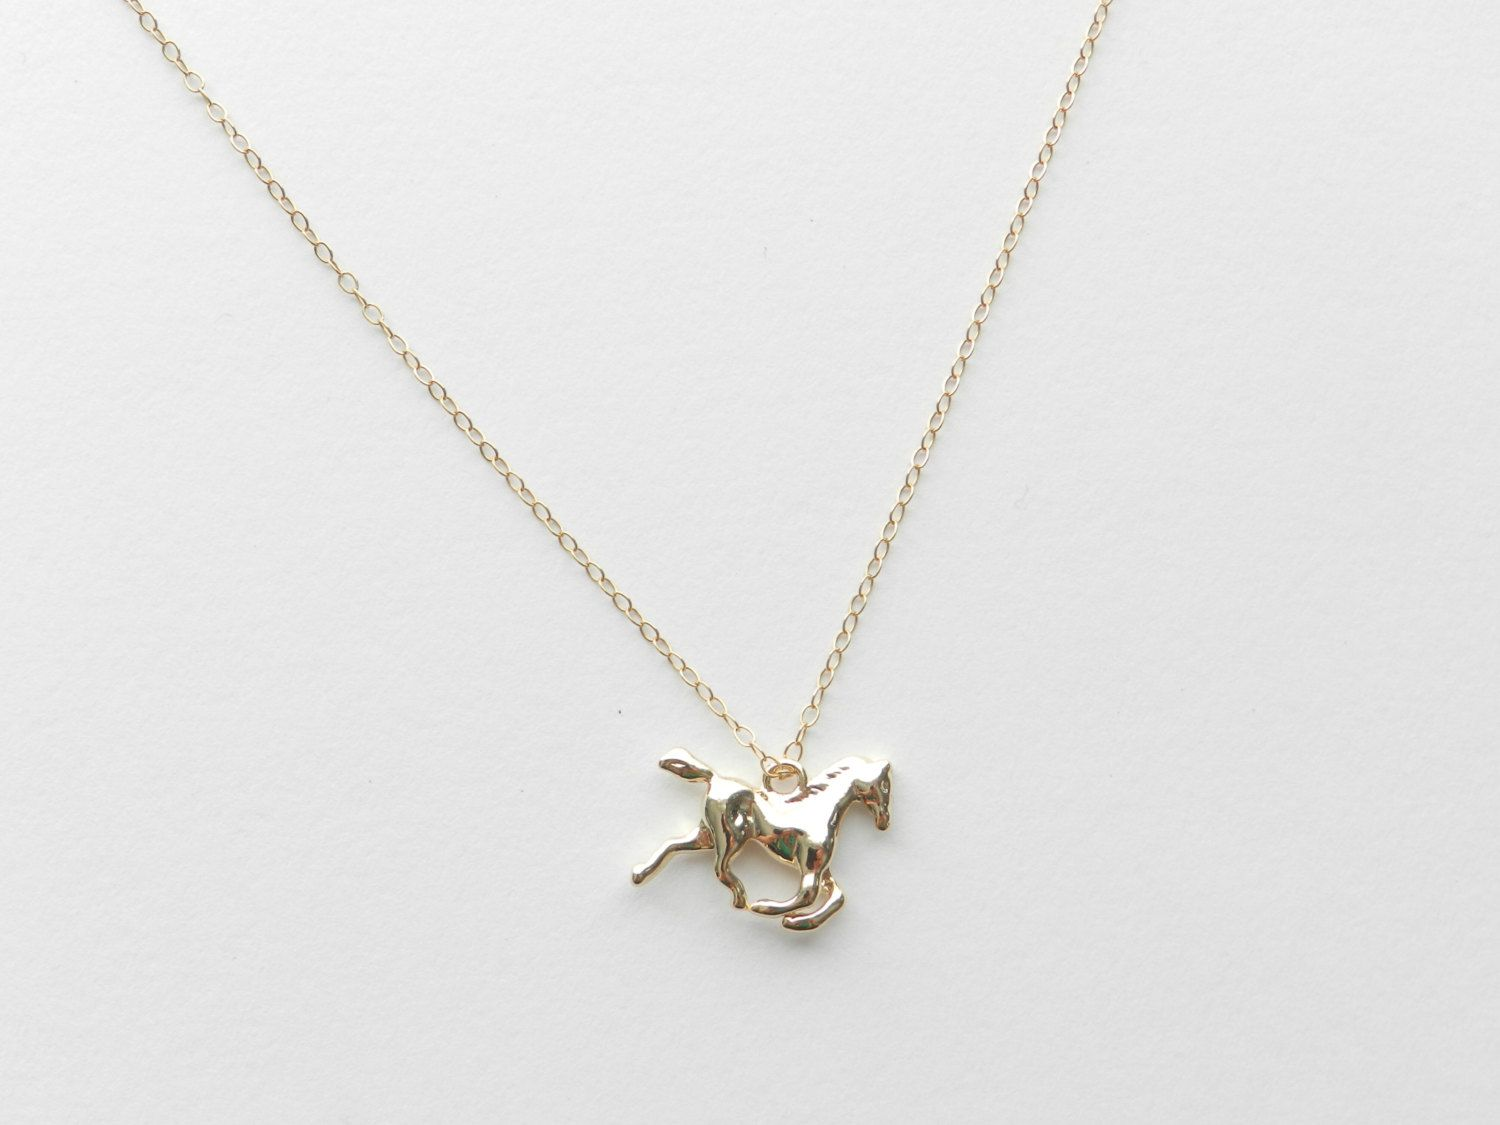 Itty Bitty Horse necklace with 14k gold filled chain.. $26.00, via Etsy.